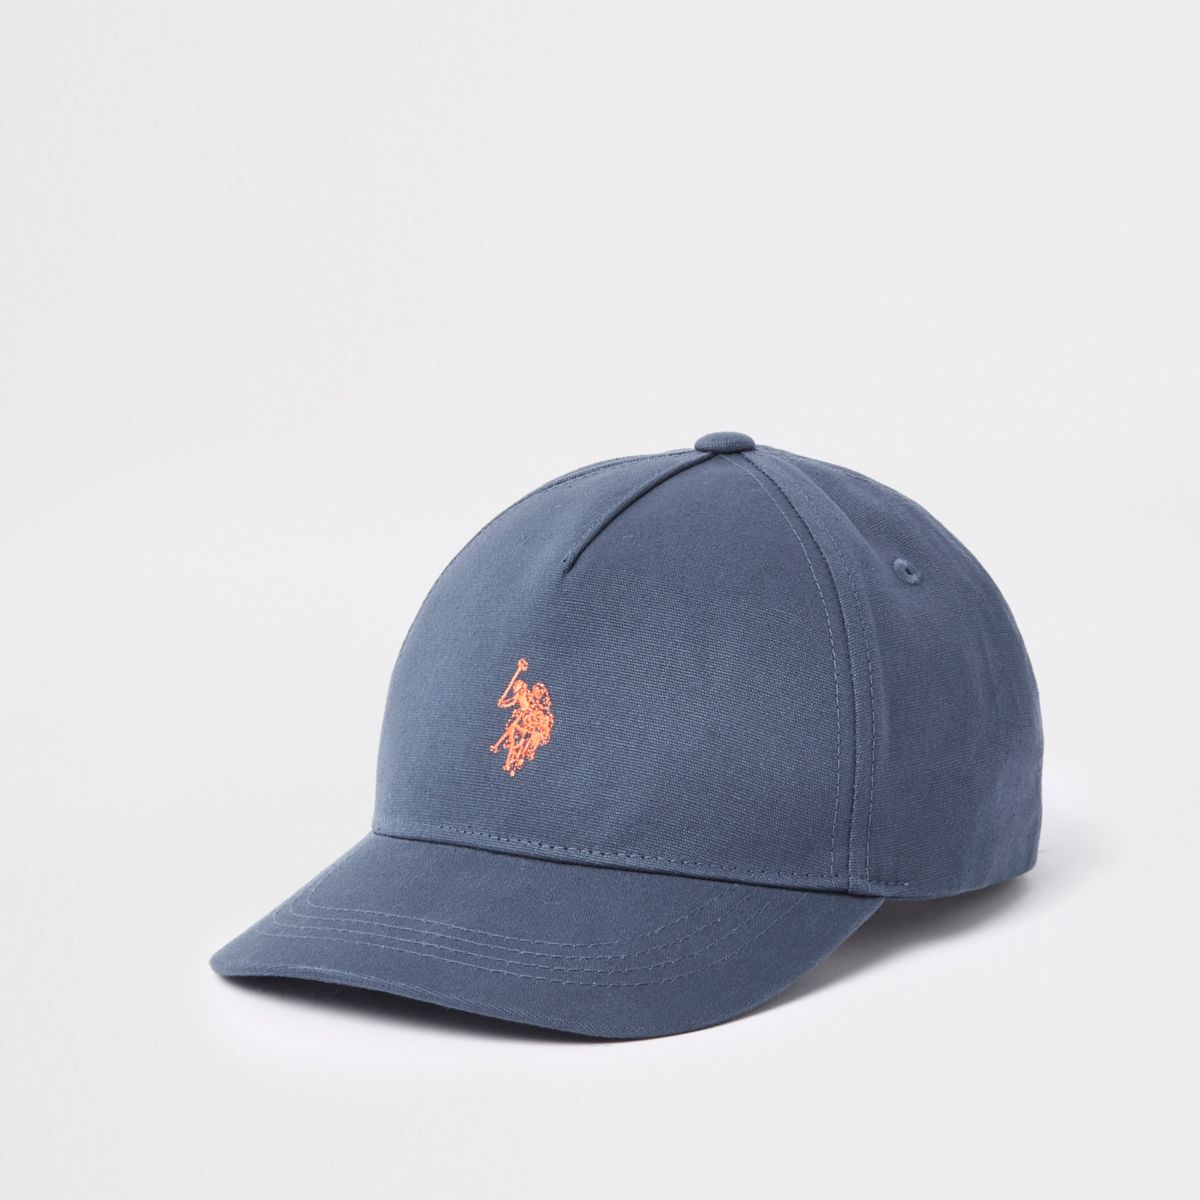 Boys navy U.S. Polo Assn. cap